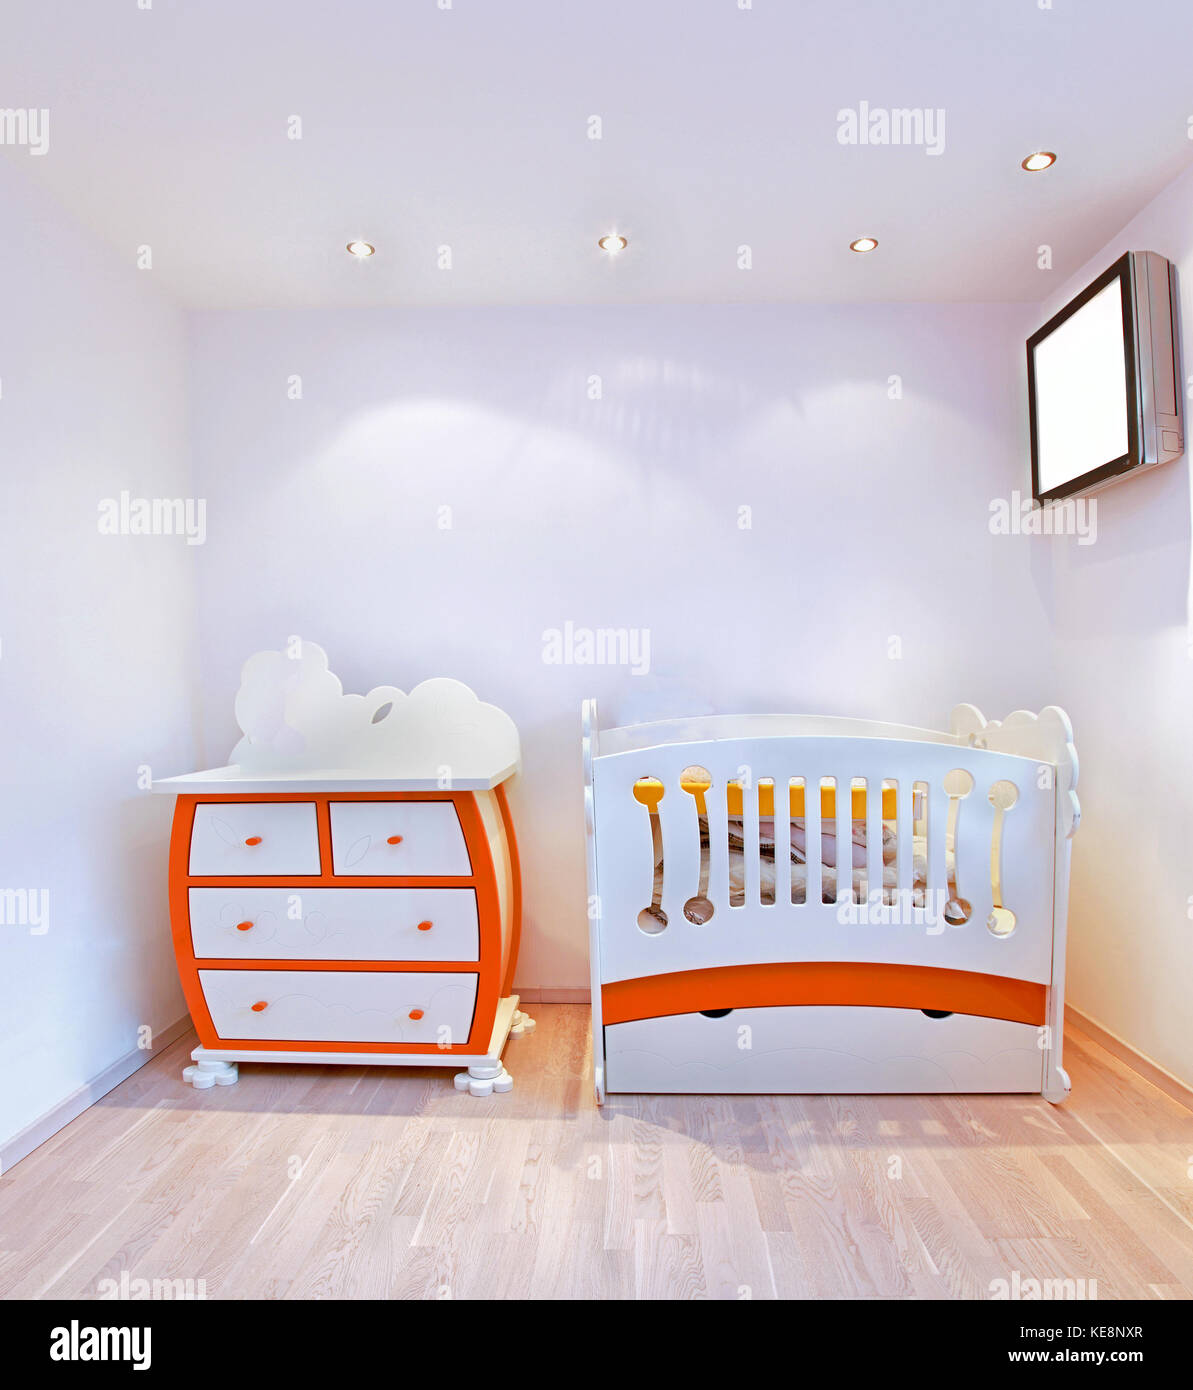 Detail of nursery room interior with small crib - Stock Image